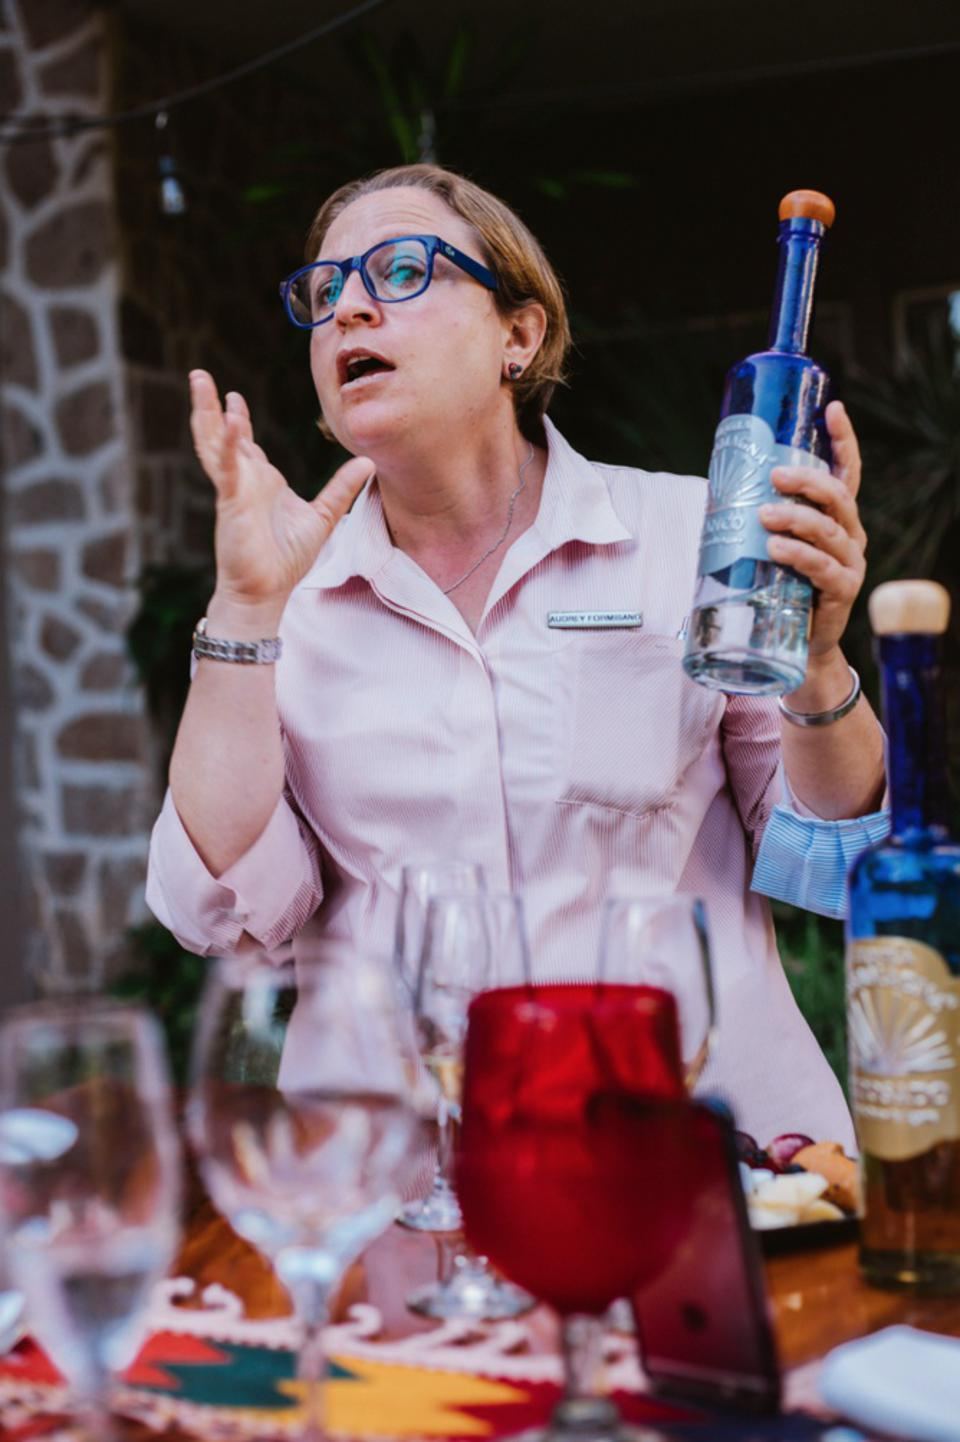 Tequila sommelier, Audrey Formisano.